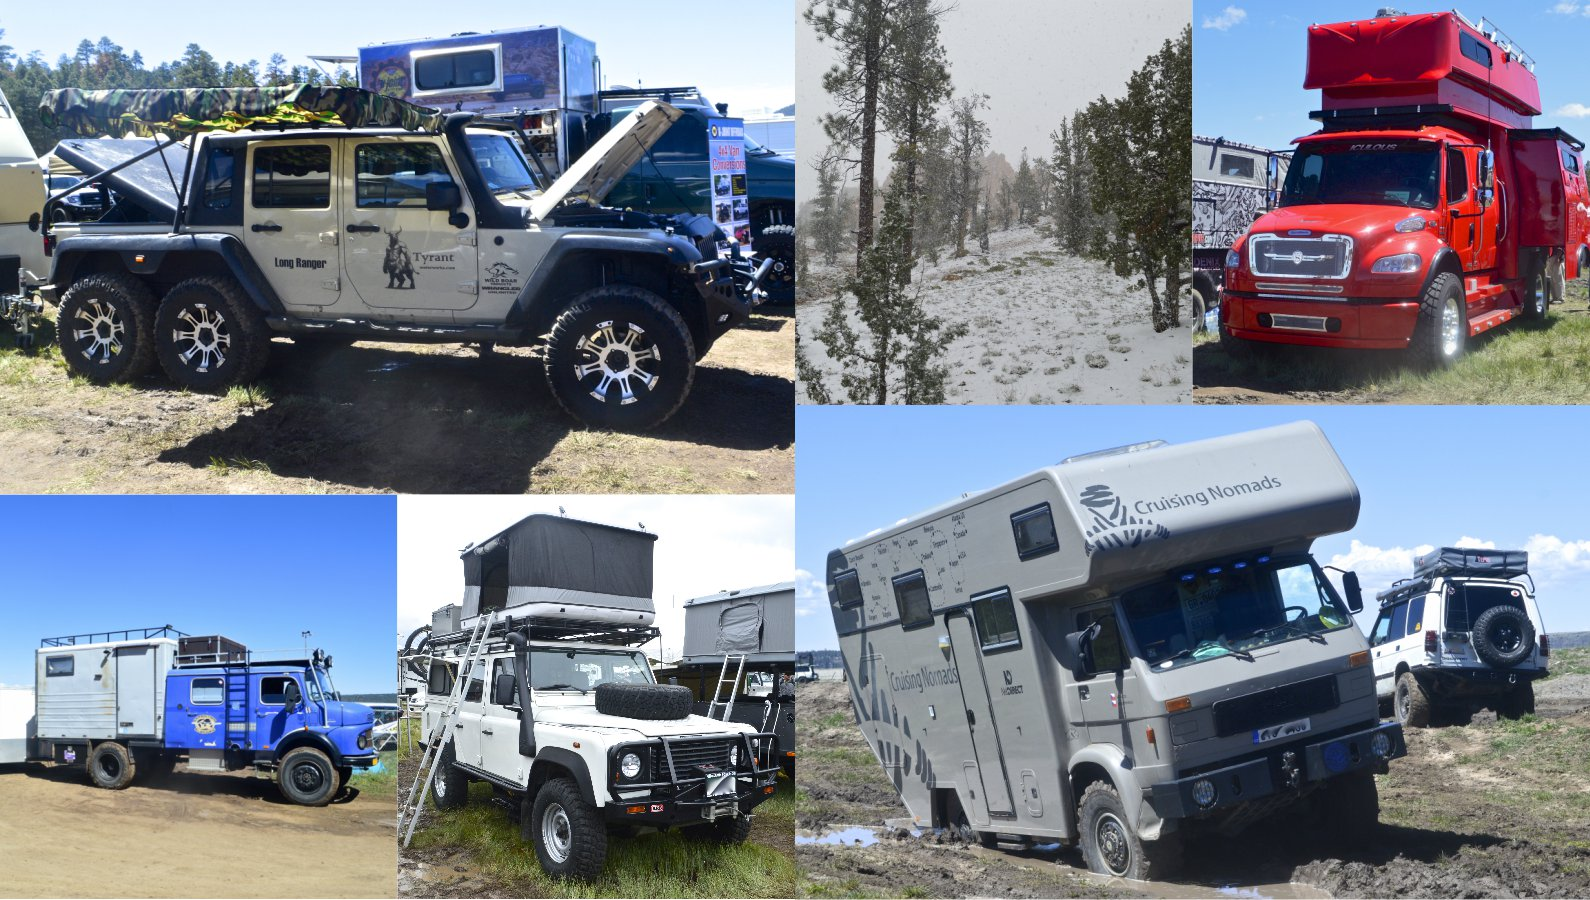 In pictures: Rubber, metal and mud at Overland Expo West 2015